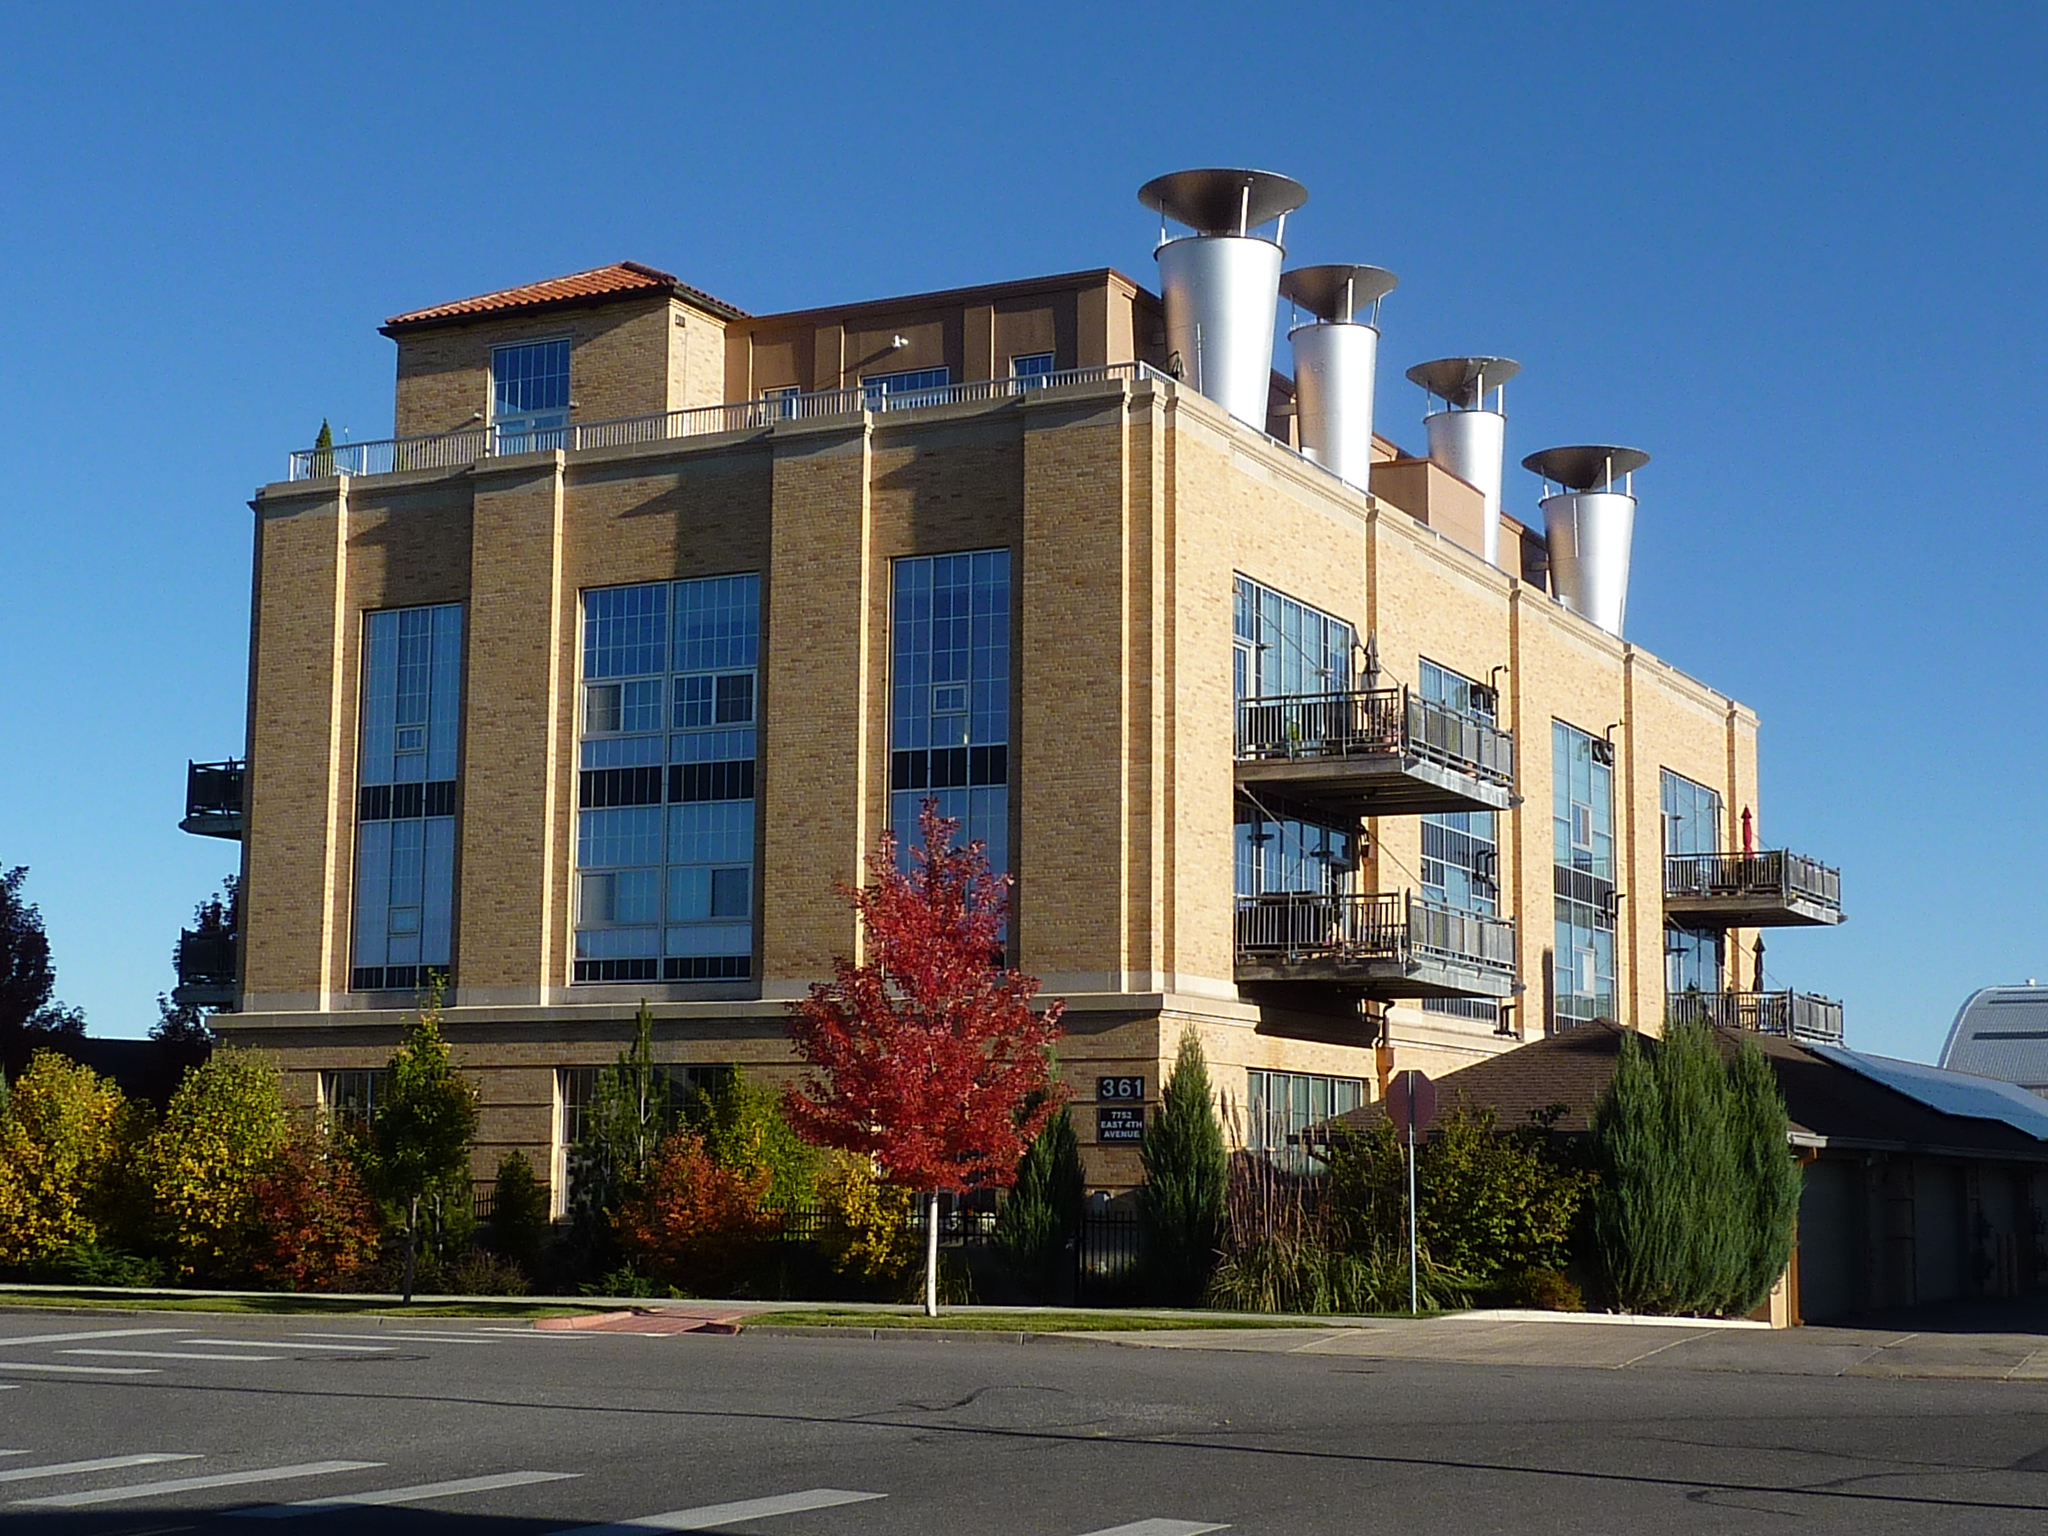 Northwest view of Steam Plant Lofts